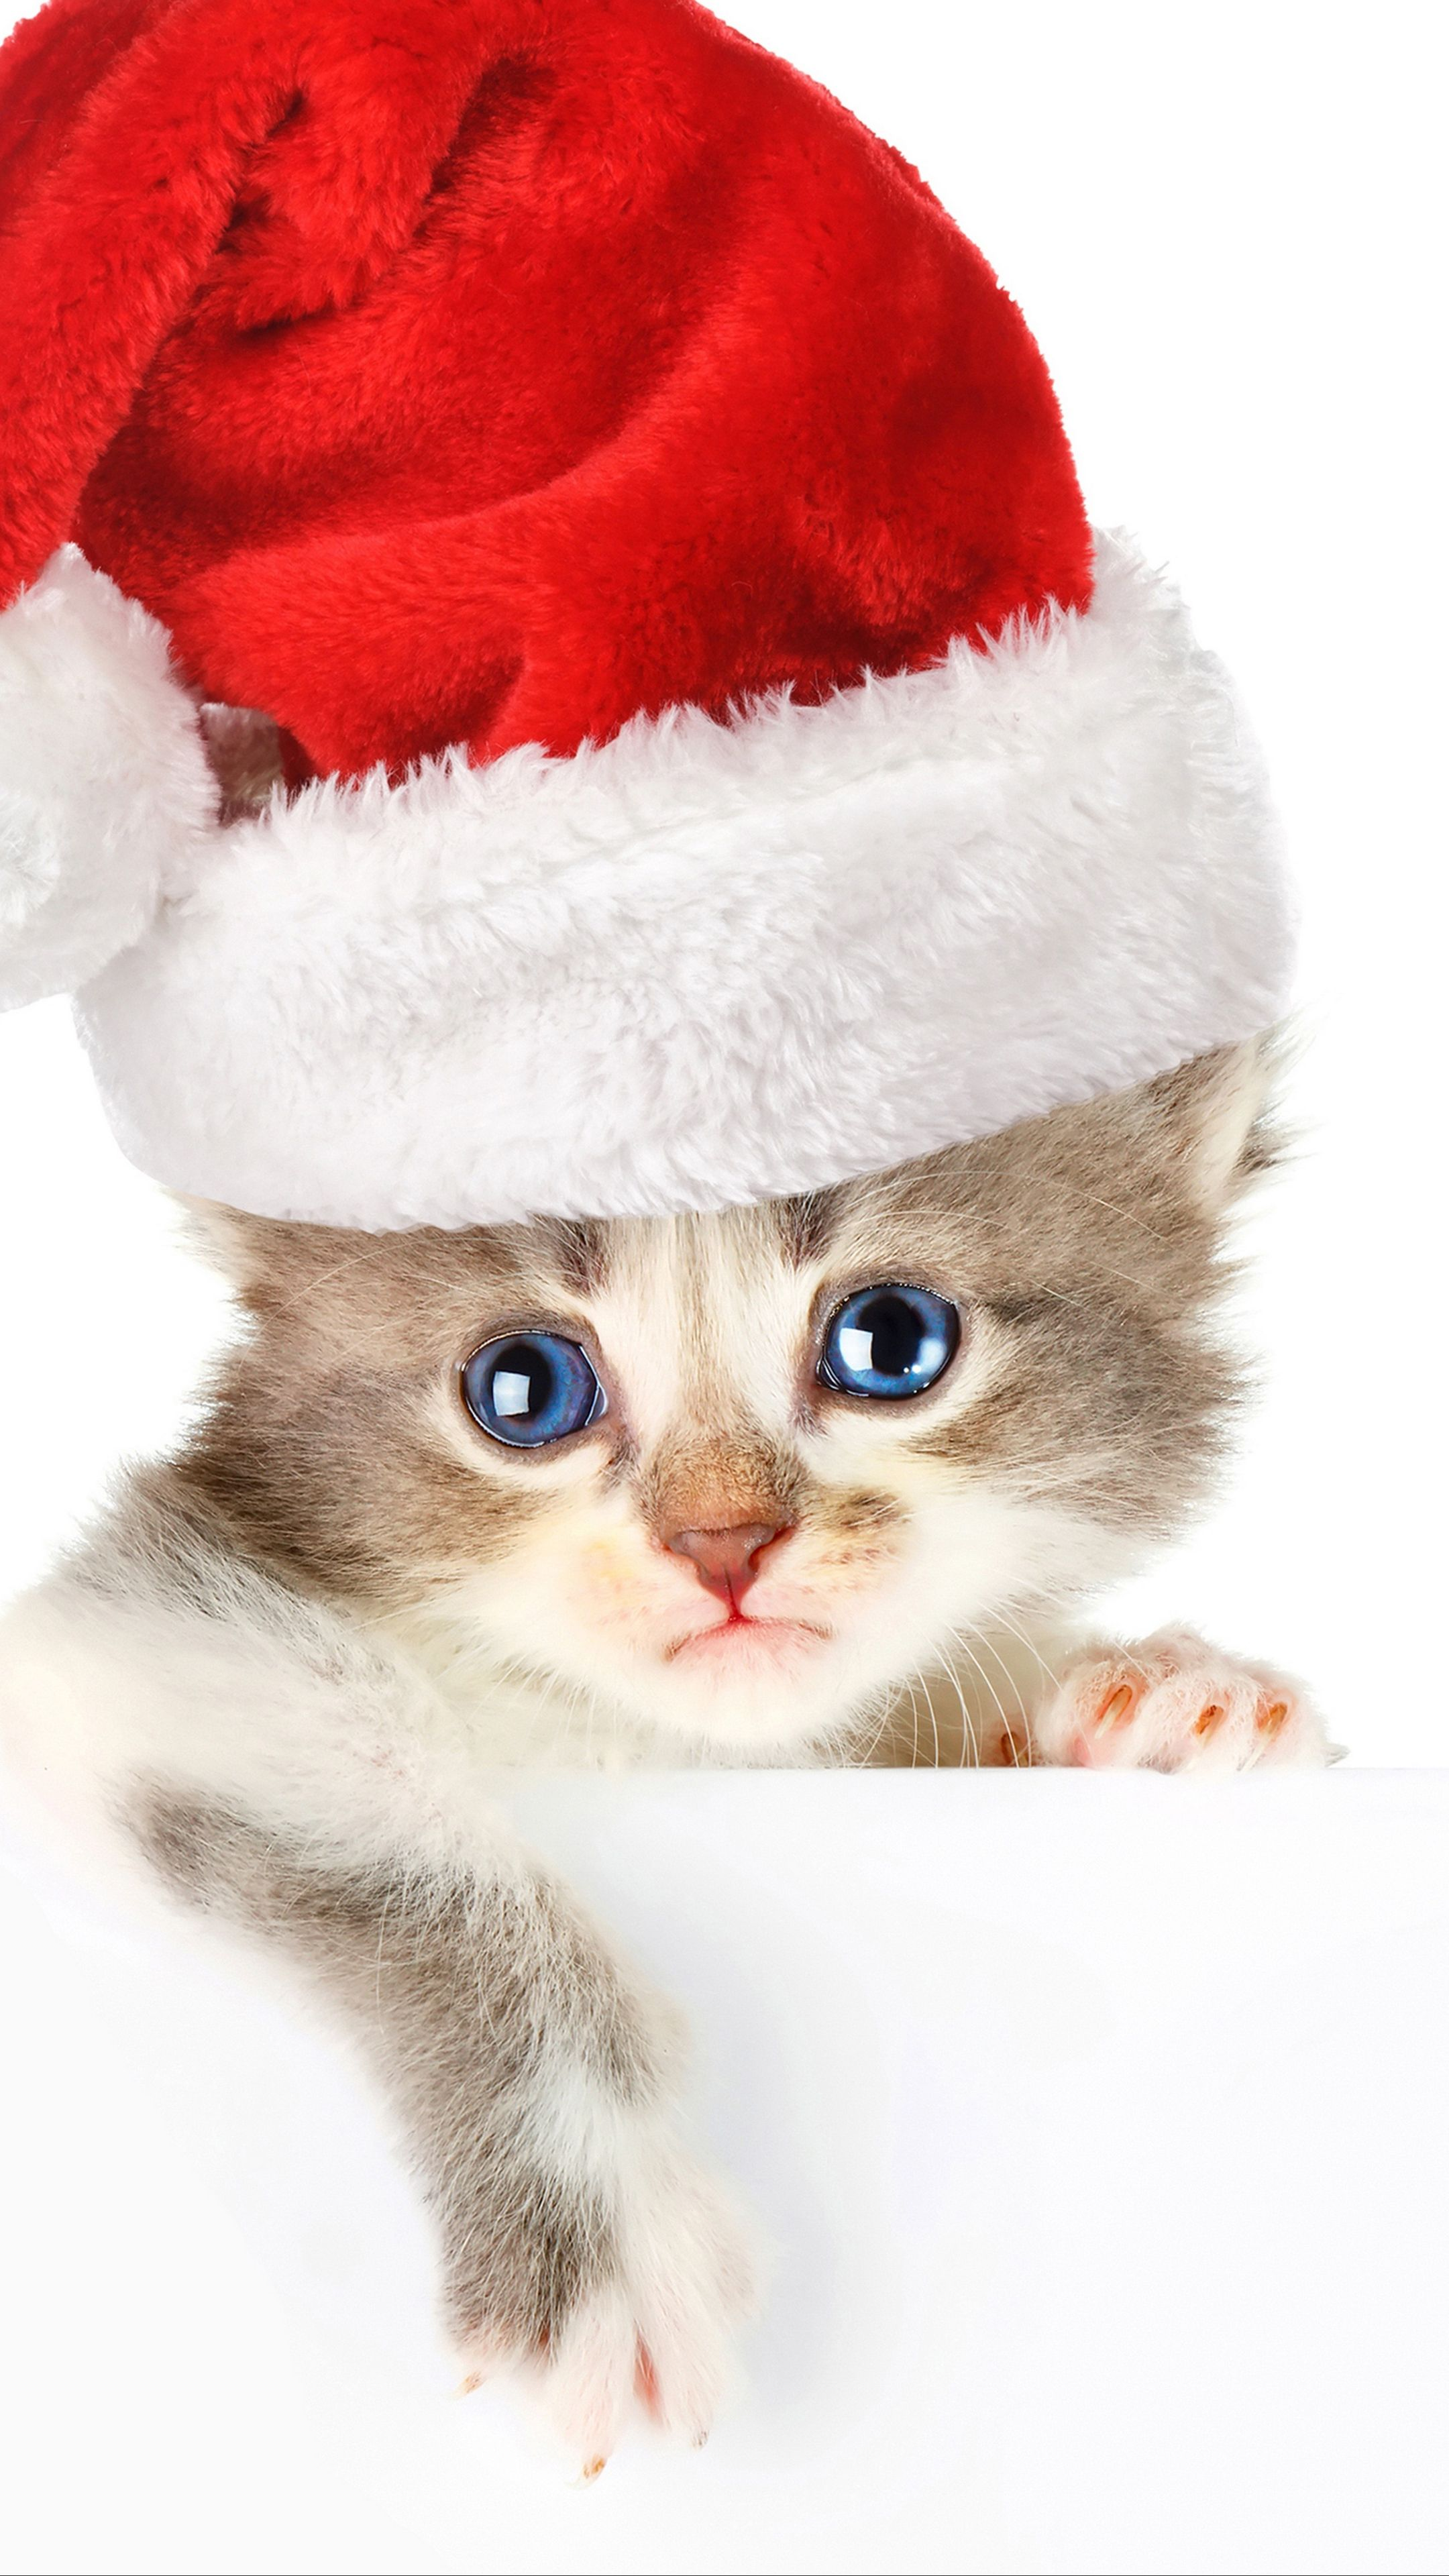 Animals Cat Hat Face Wallpapers Hd 4k Background For Android Cats Christmas Cats Christmas Kitten